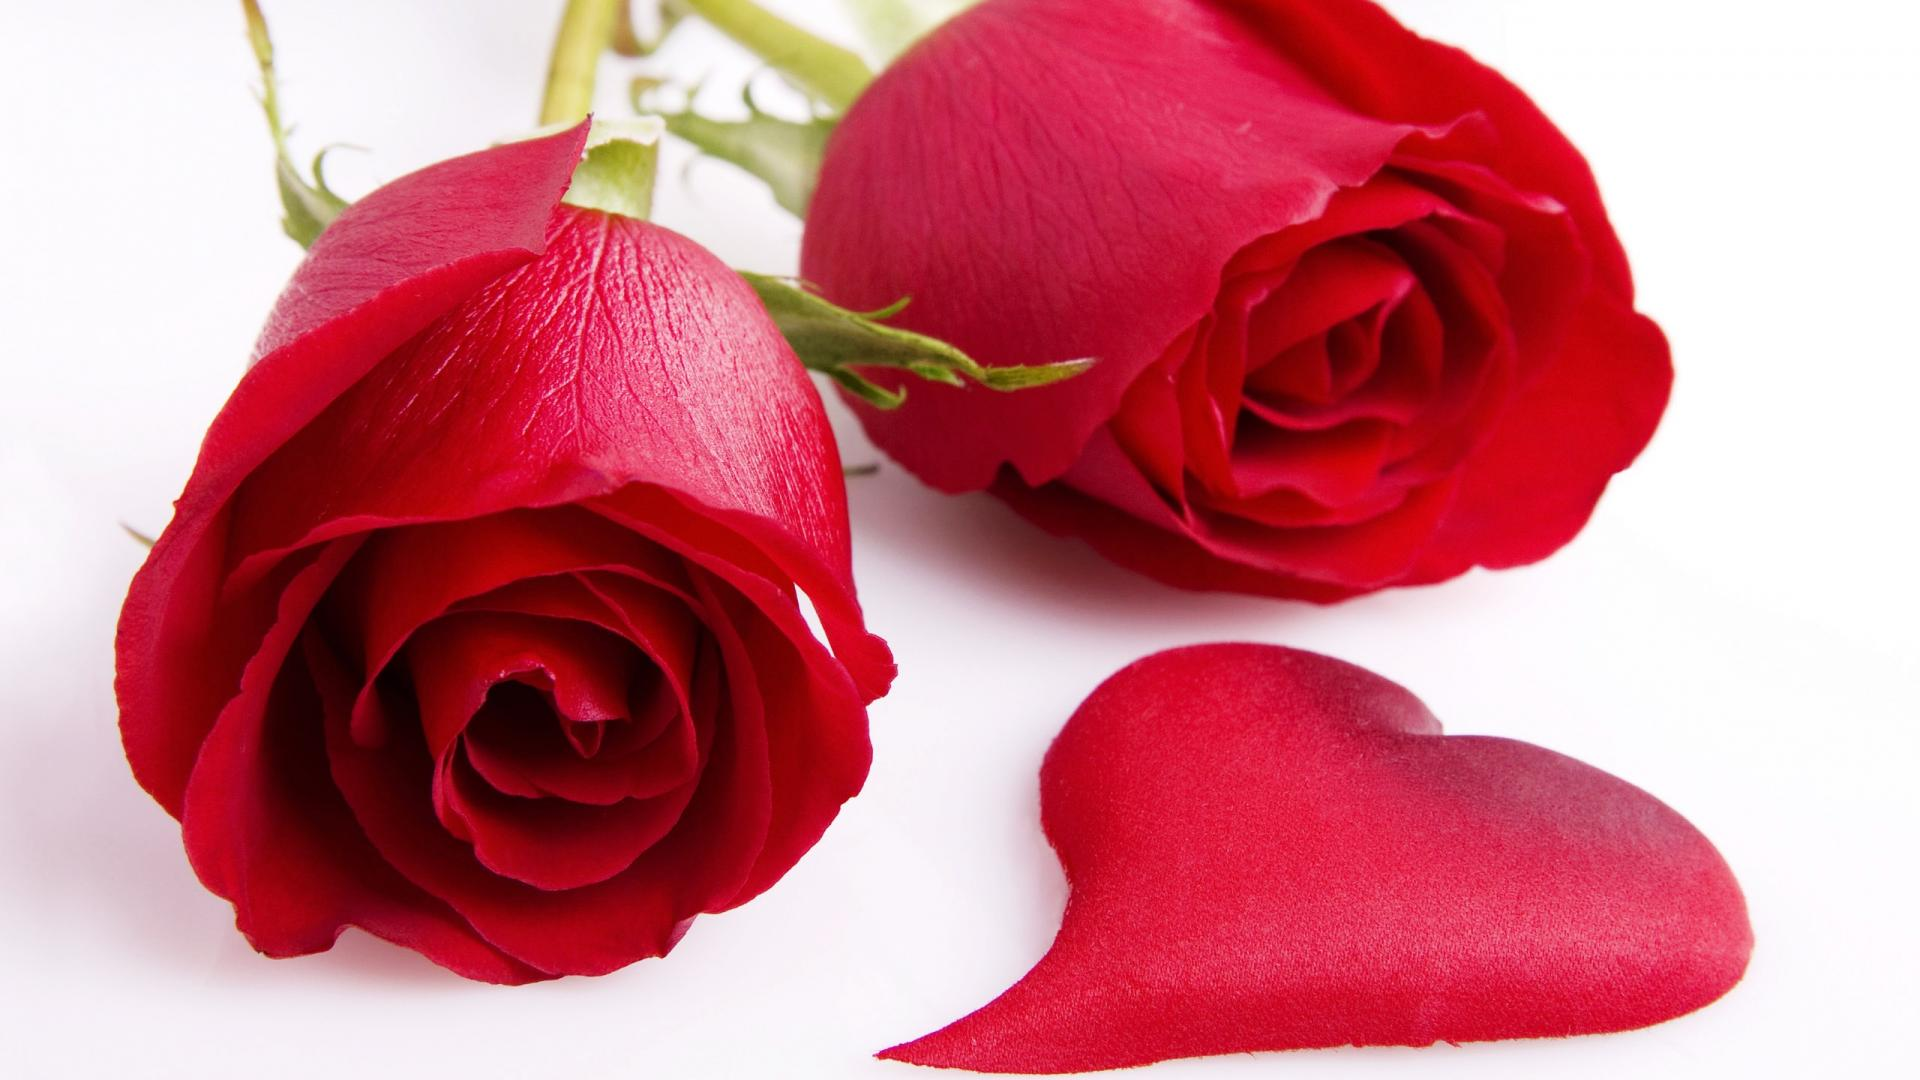 Red Roses Wallpapers HD A39 love